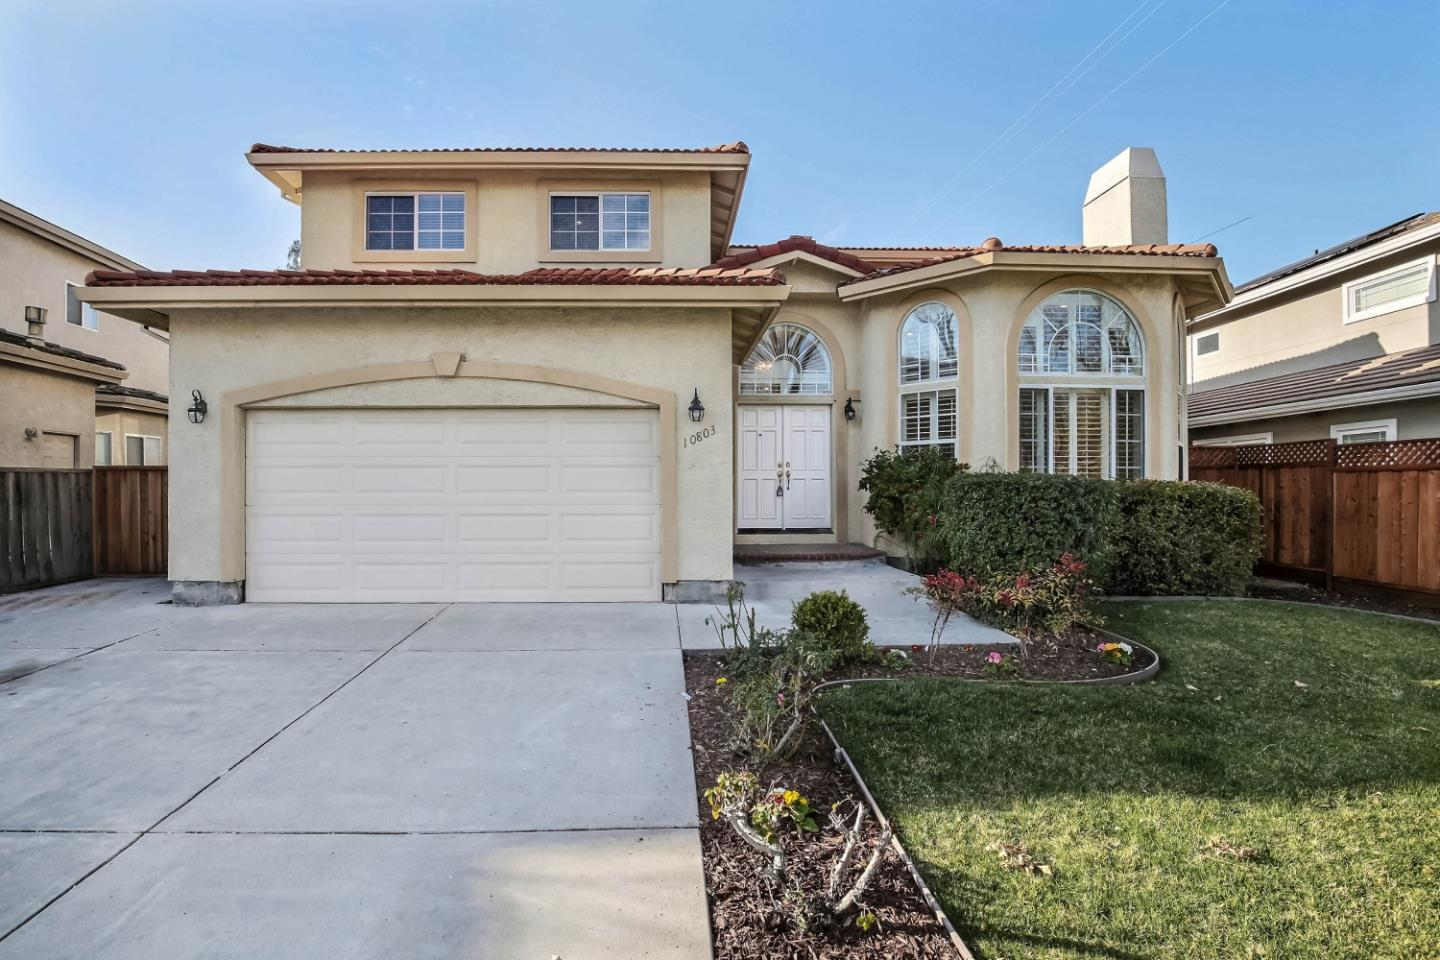 Detail Gallery Image 1 of 1 For 10803 Minette Dr, Cupertino, CA, 95014 - 5 Beds | 3/1 Baths